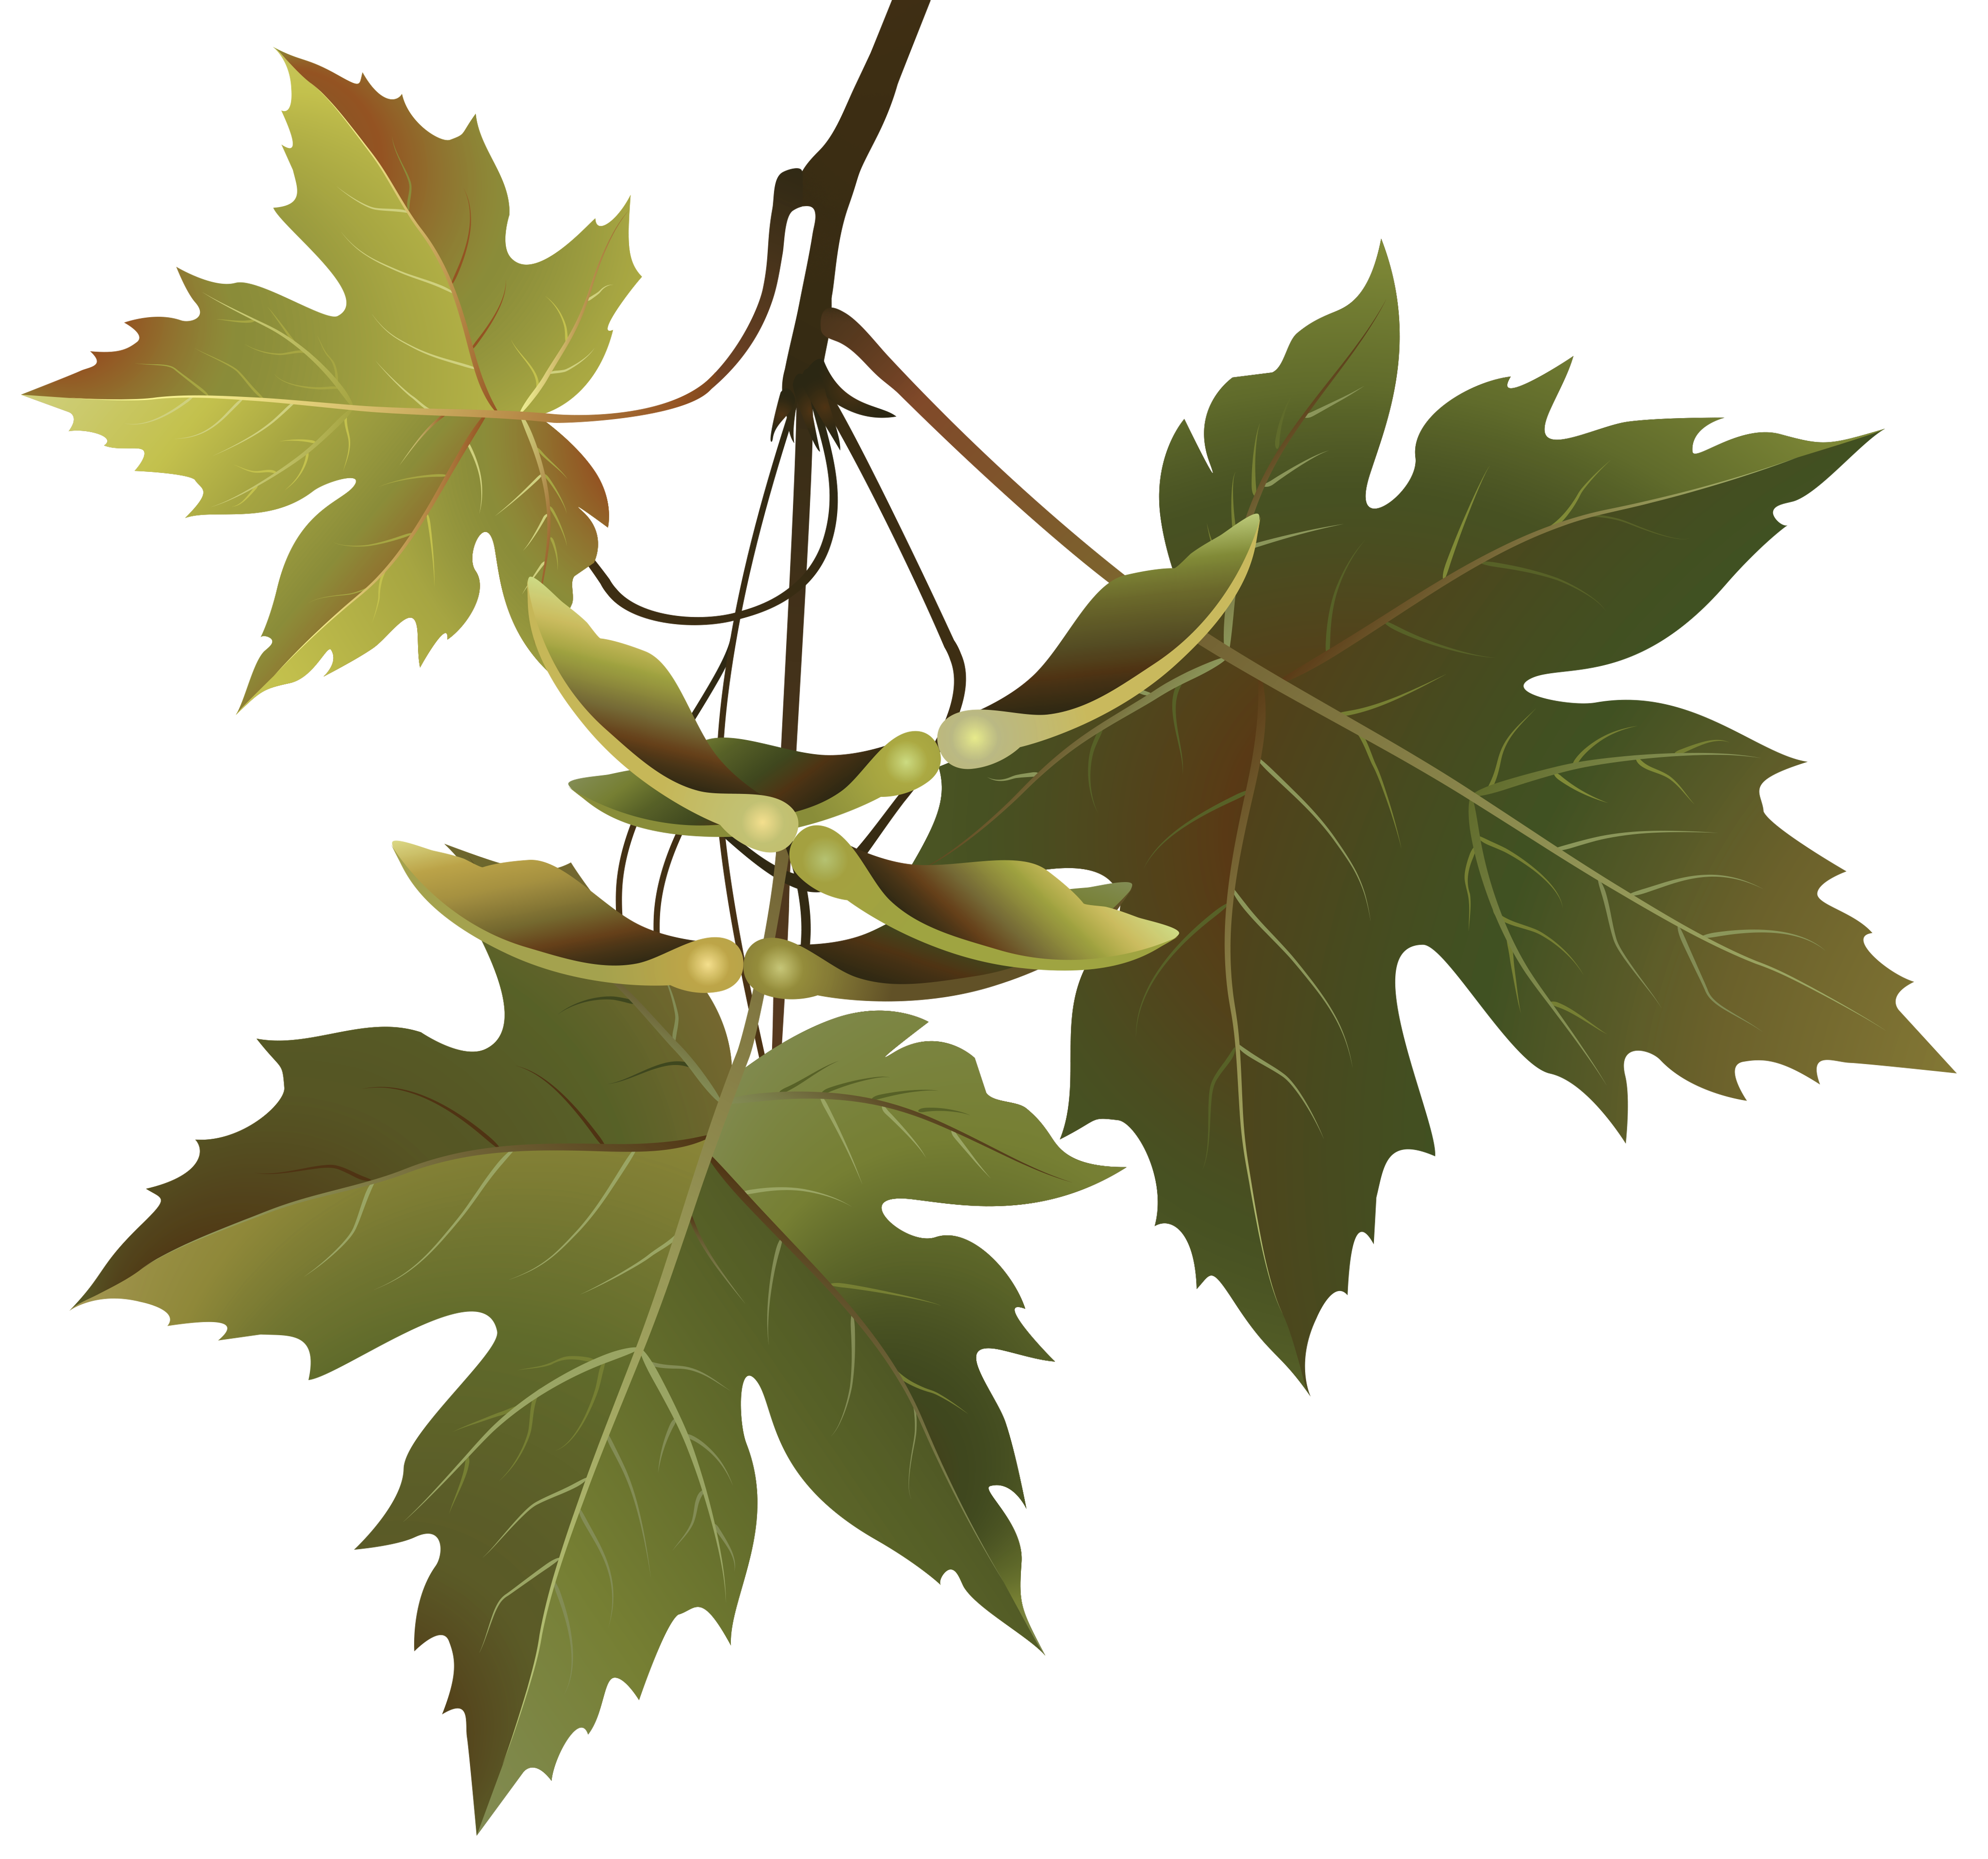 Autumn leaves png image. Branch clipart leave clipart